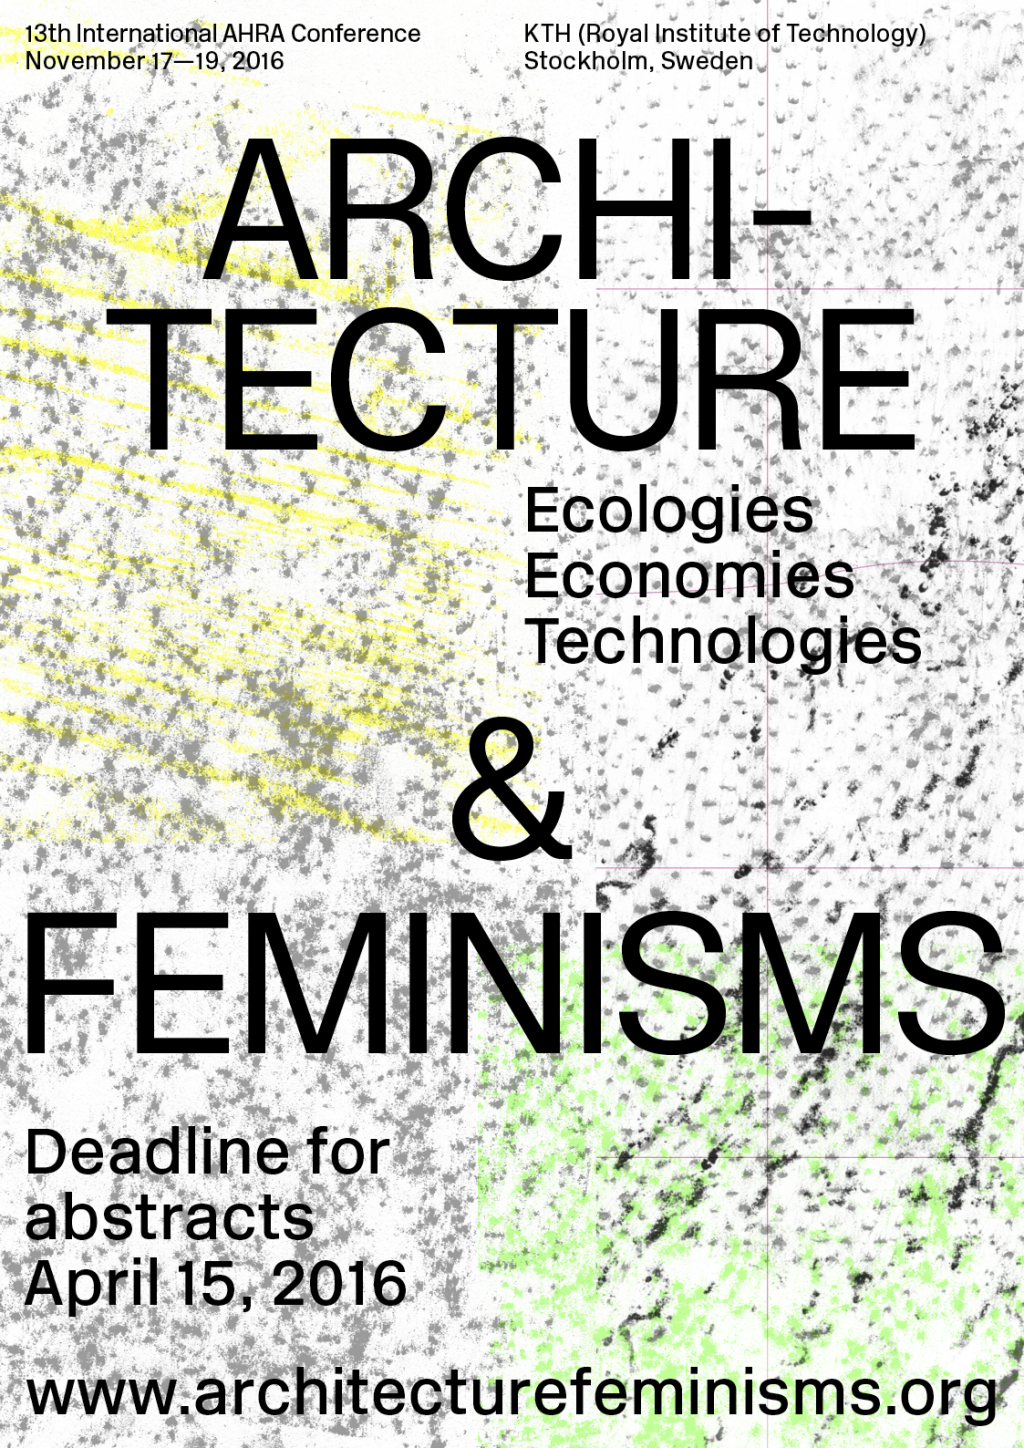 Sara Kaaman Architecture & Feminisms – conference identity